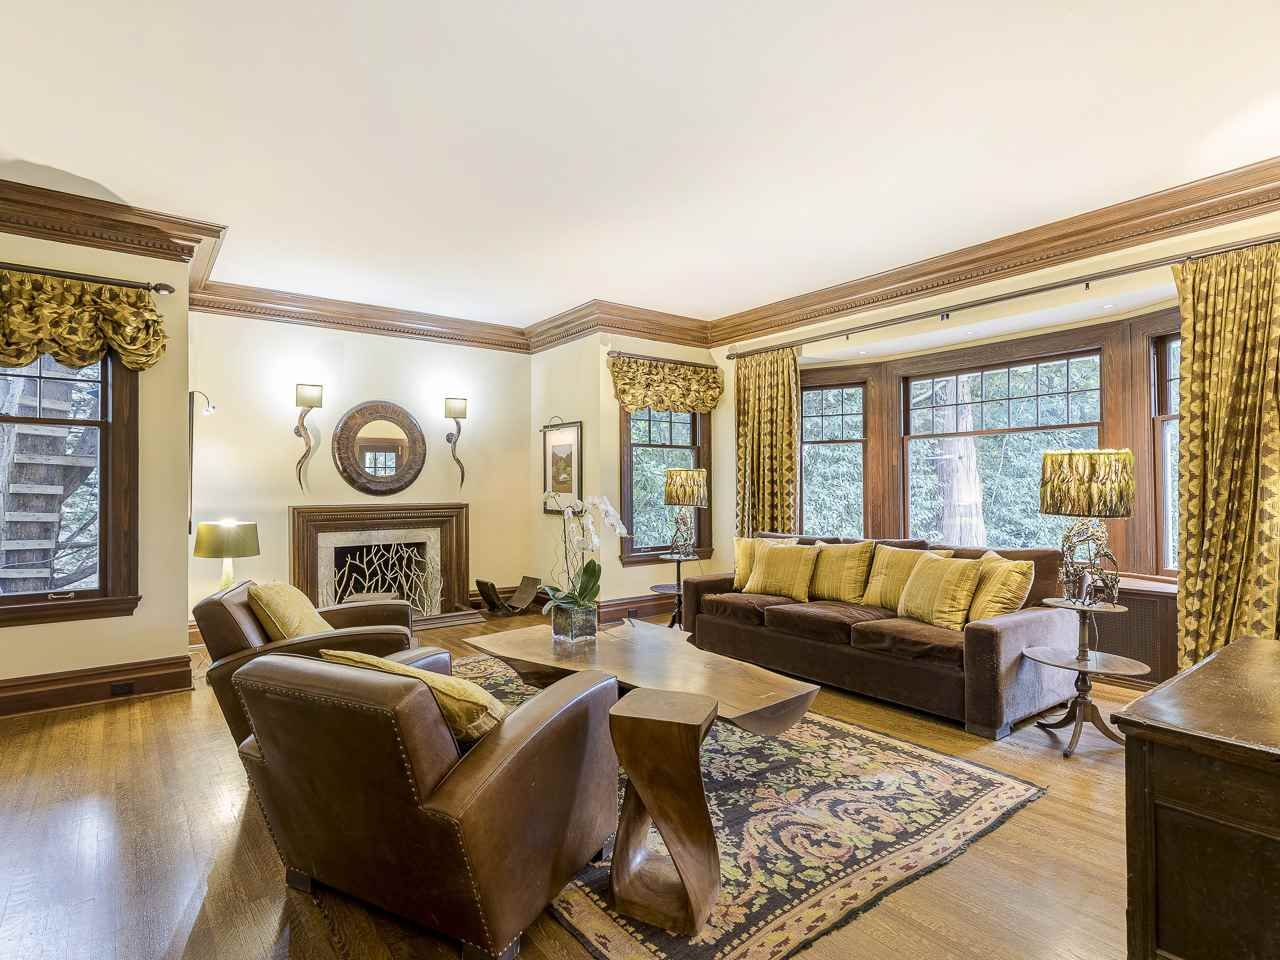 Photo 4: Photos: 3369 THE CRESCENT in Vancouver: Shaughnessy House for sale (Vancouver West)  : MLS®# R2534743